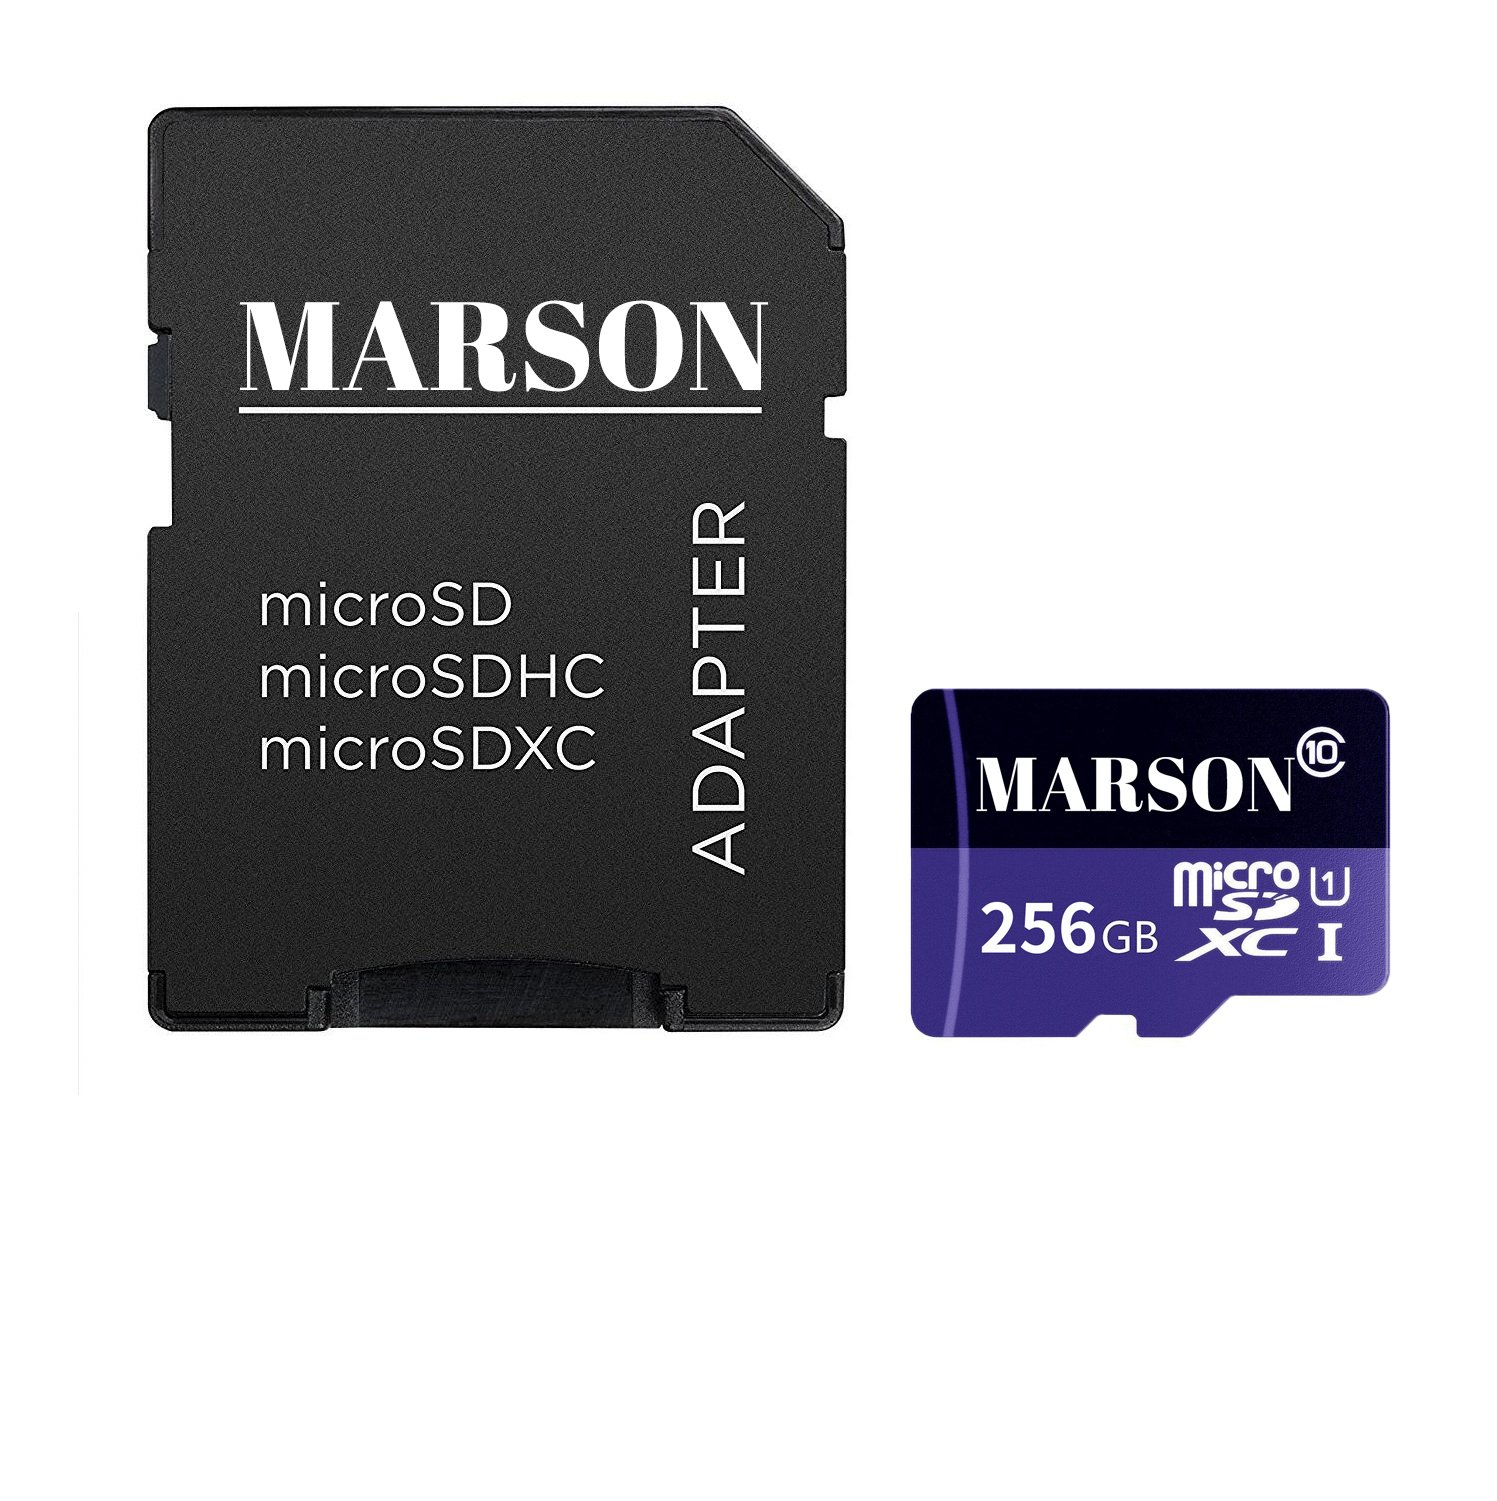 MARSON 256GB Micro SD Card High Speed Class 10 Micro SD SDXC Memory Card With Adapter by Marson (Image #2)